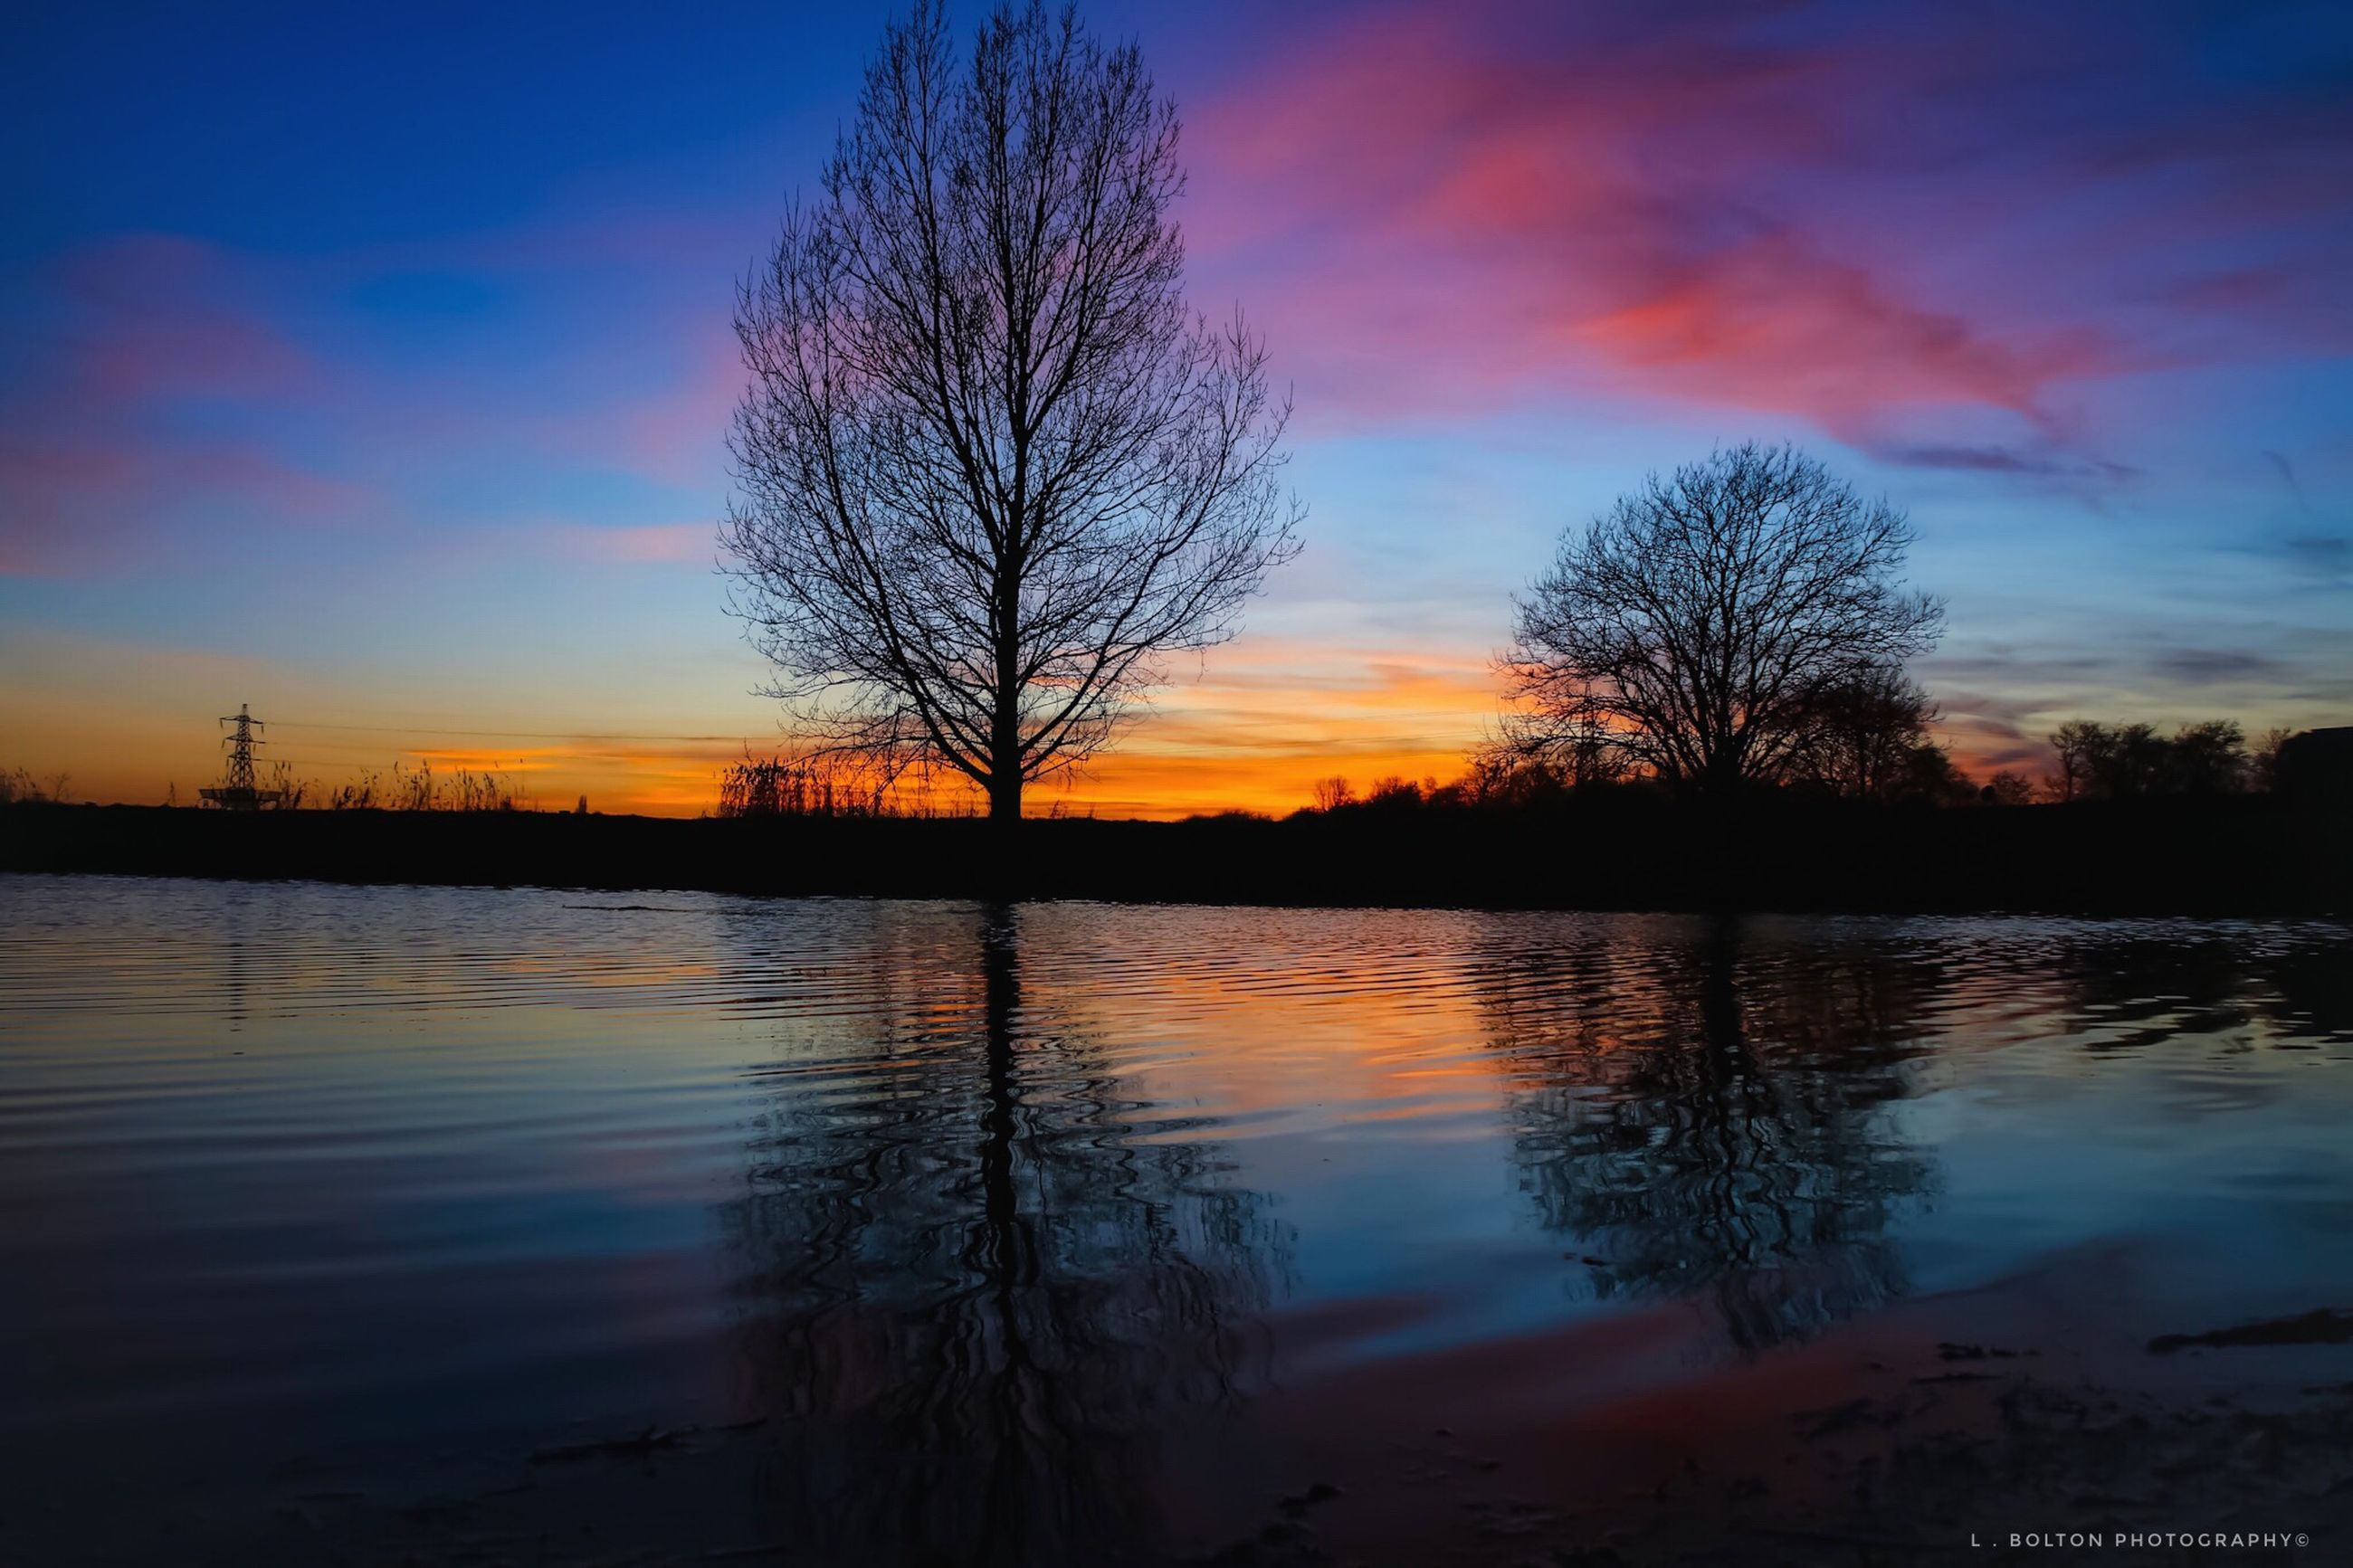 sky, sunset, water, reflection, tree, scenics - nature, beauty in nature, tranquil scene, tranquility, silhouette, orange color, lake, plant, cloud - sky, bare tree, nature, no people, non-urban scene, idyllic, outdoors, romantic sky